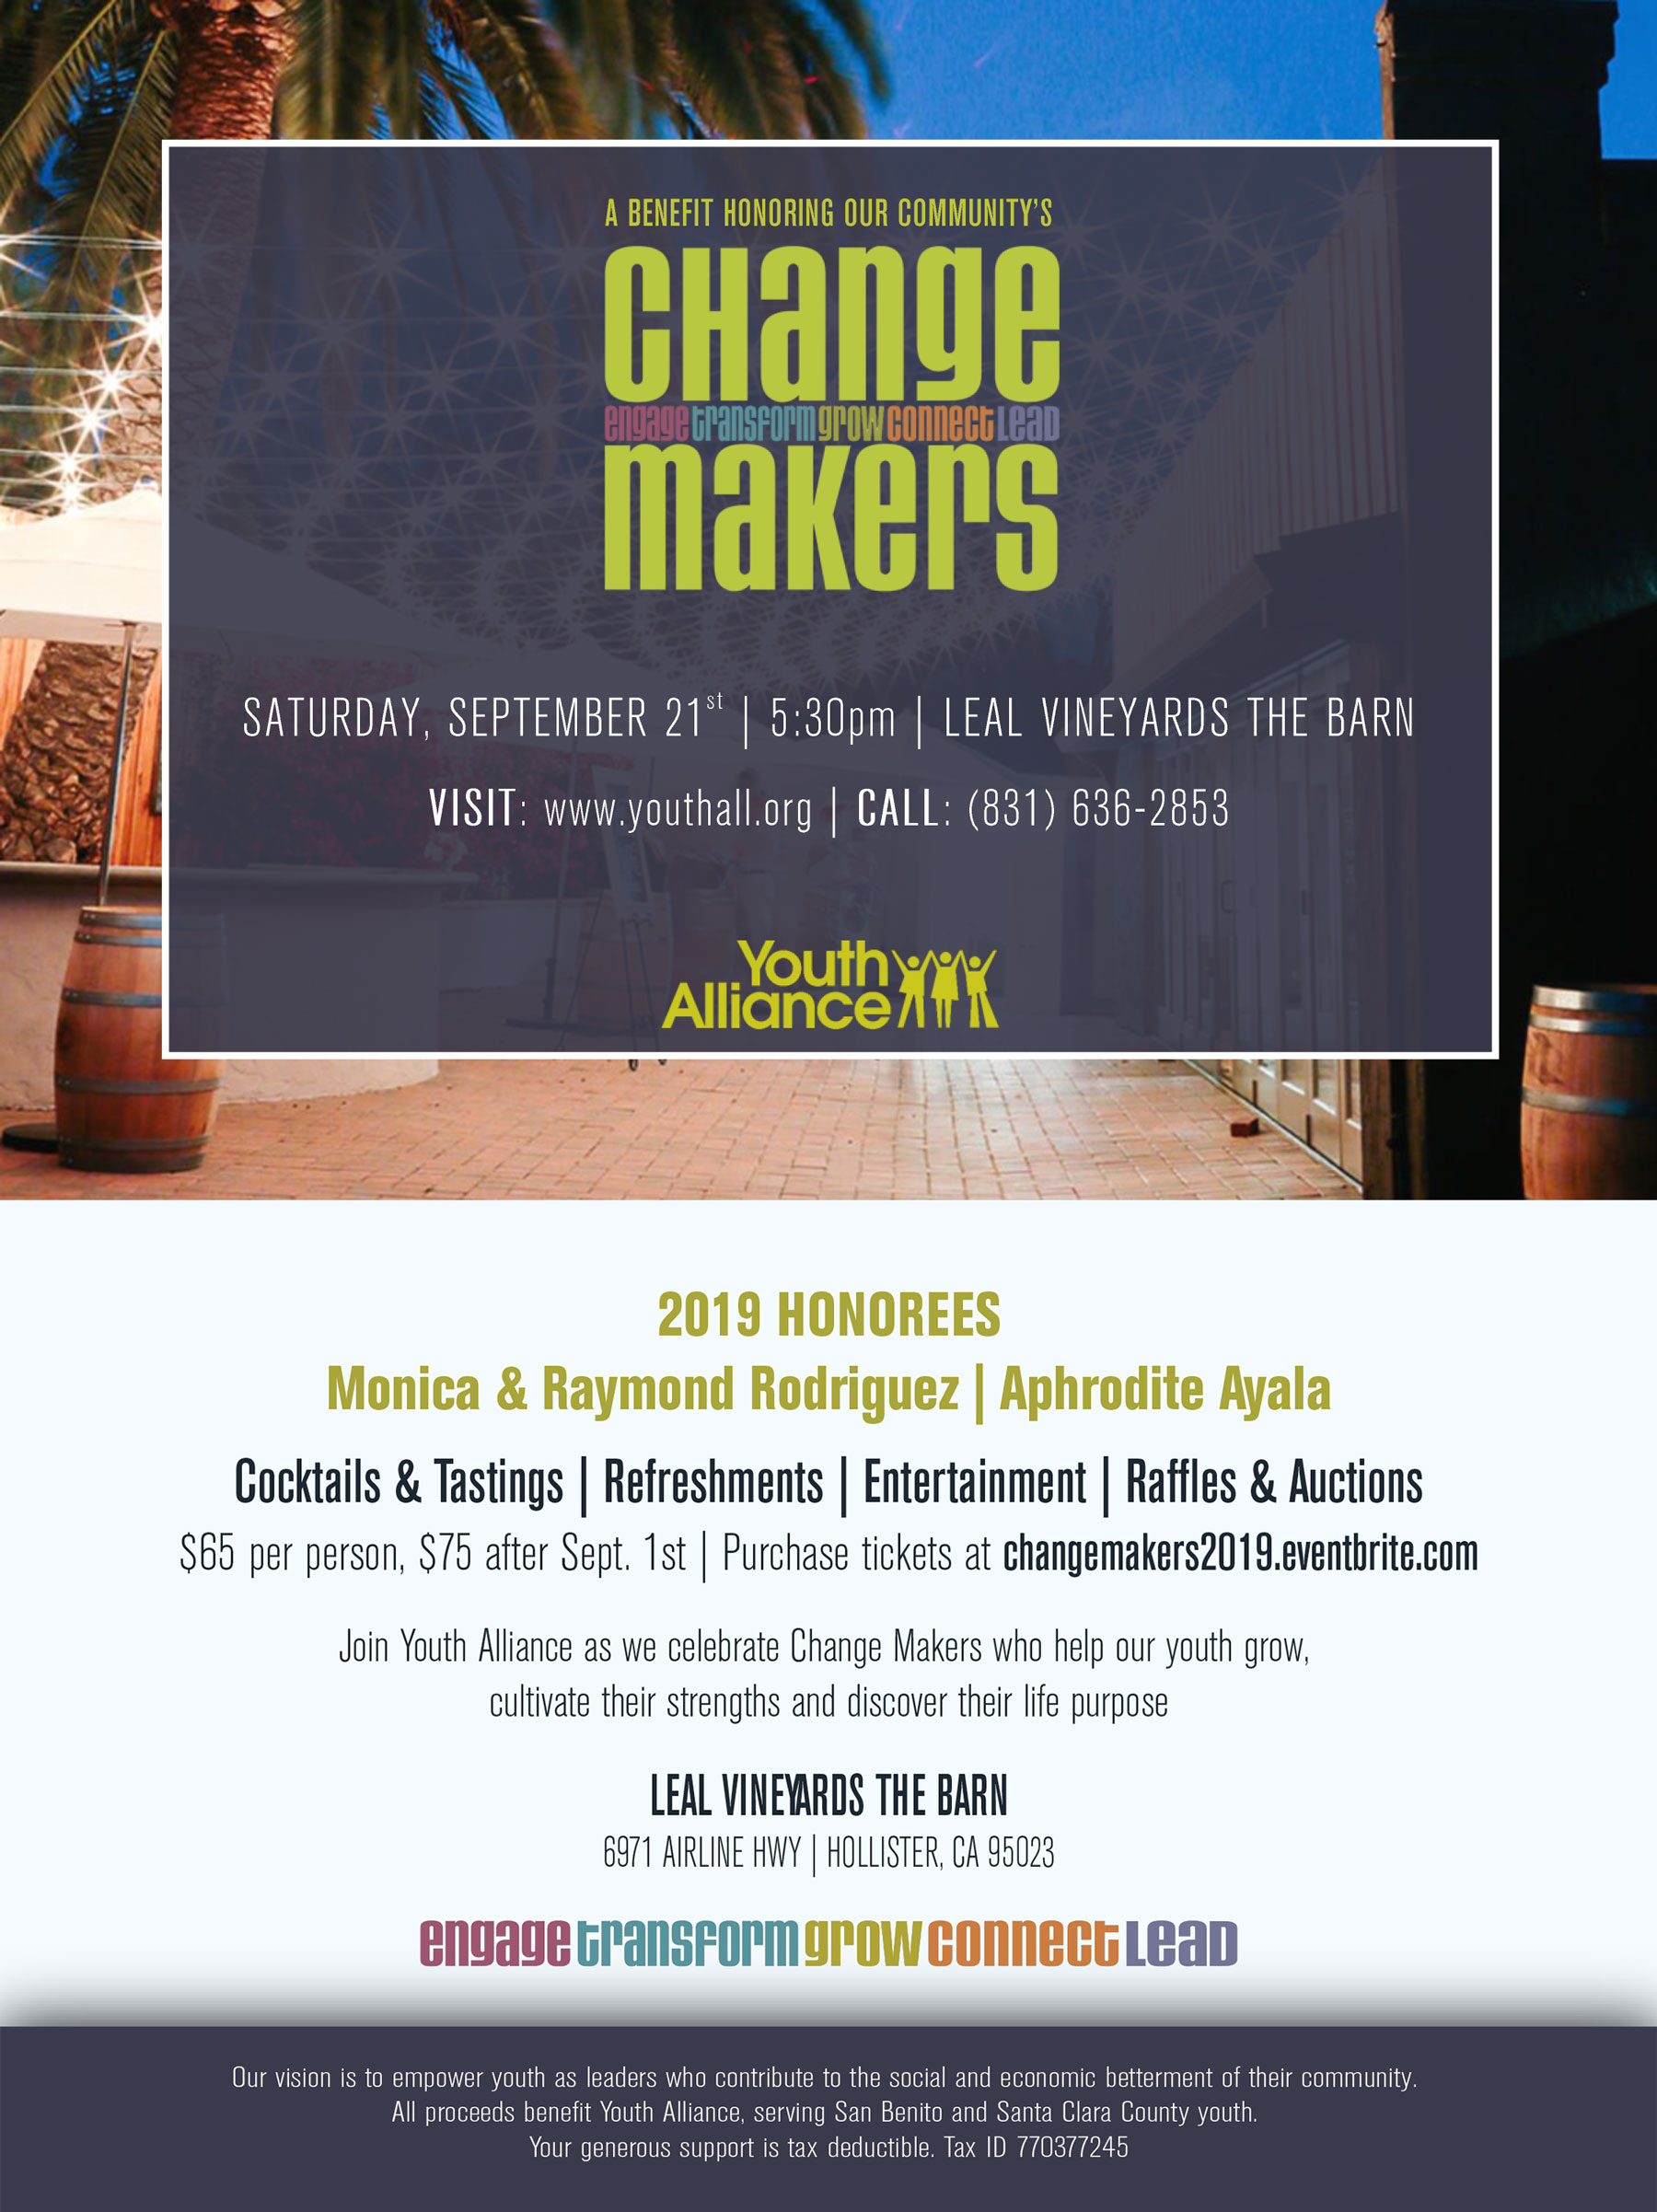 Change Makers 2019 event